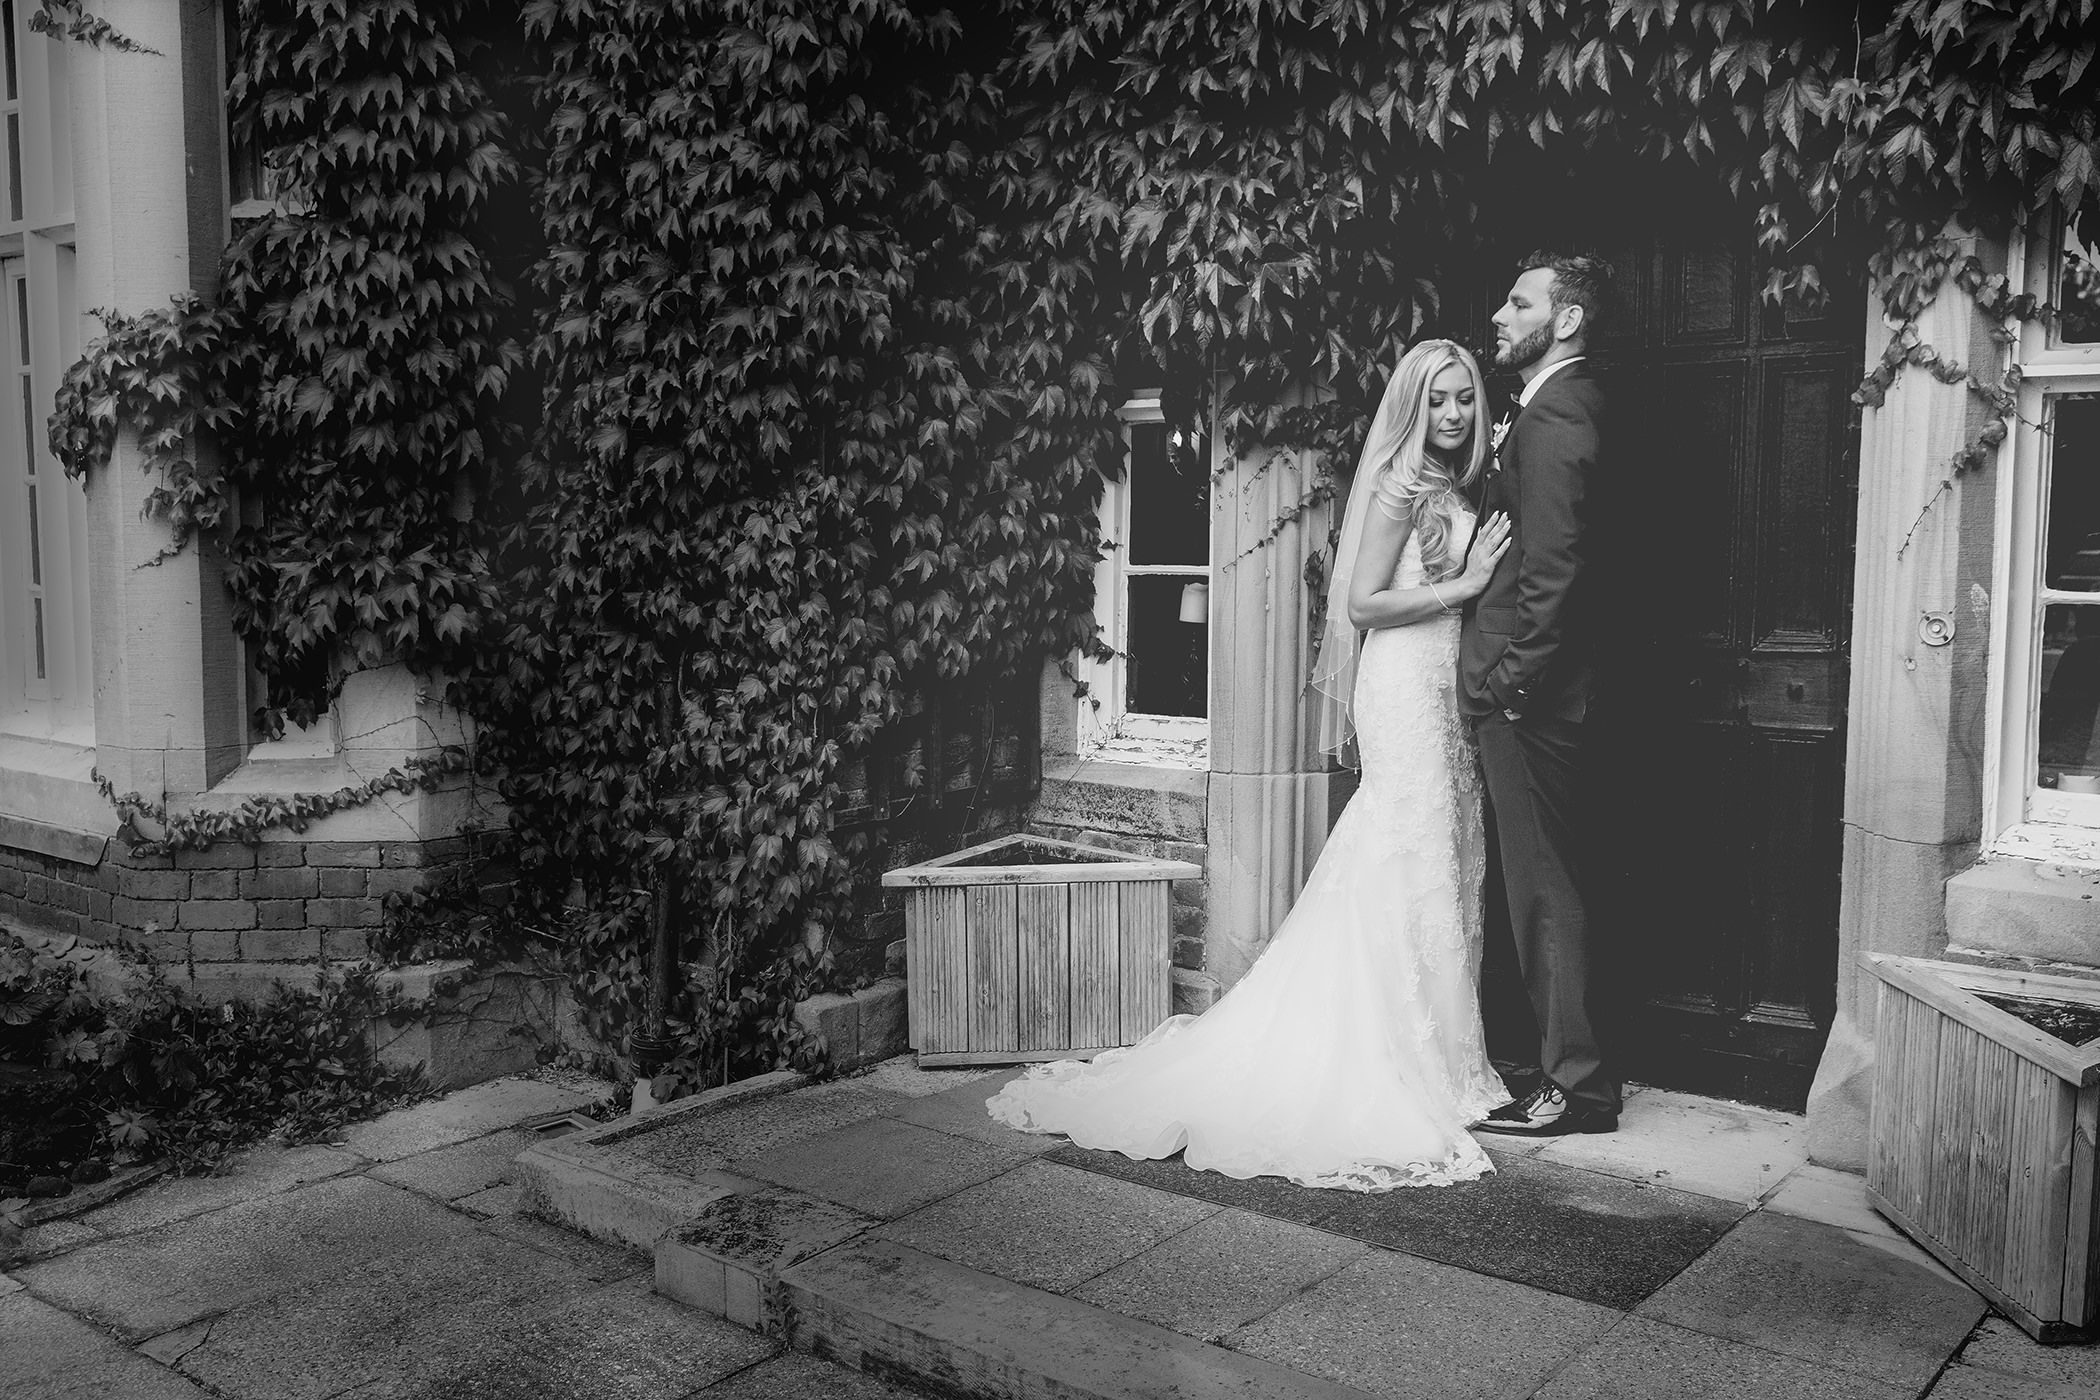 the bride and groom personal wedding photos at the Villa wrea Green